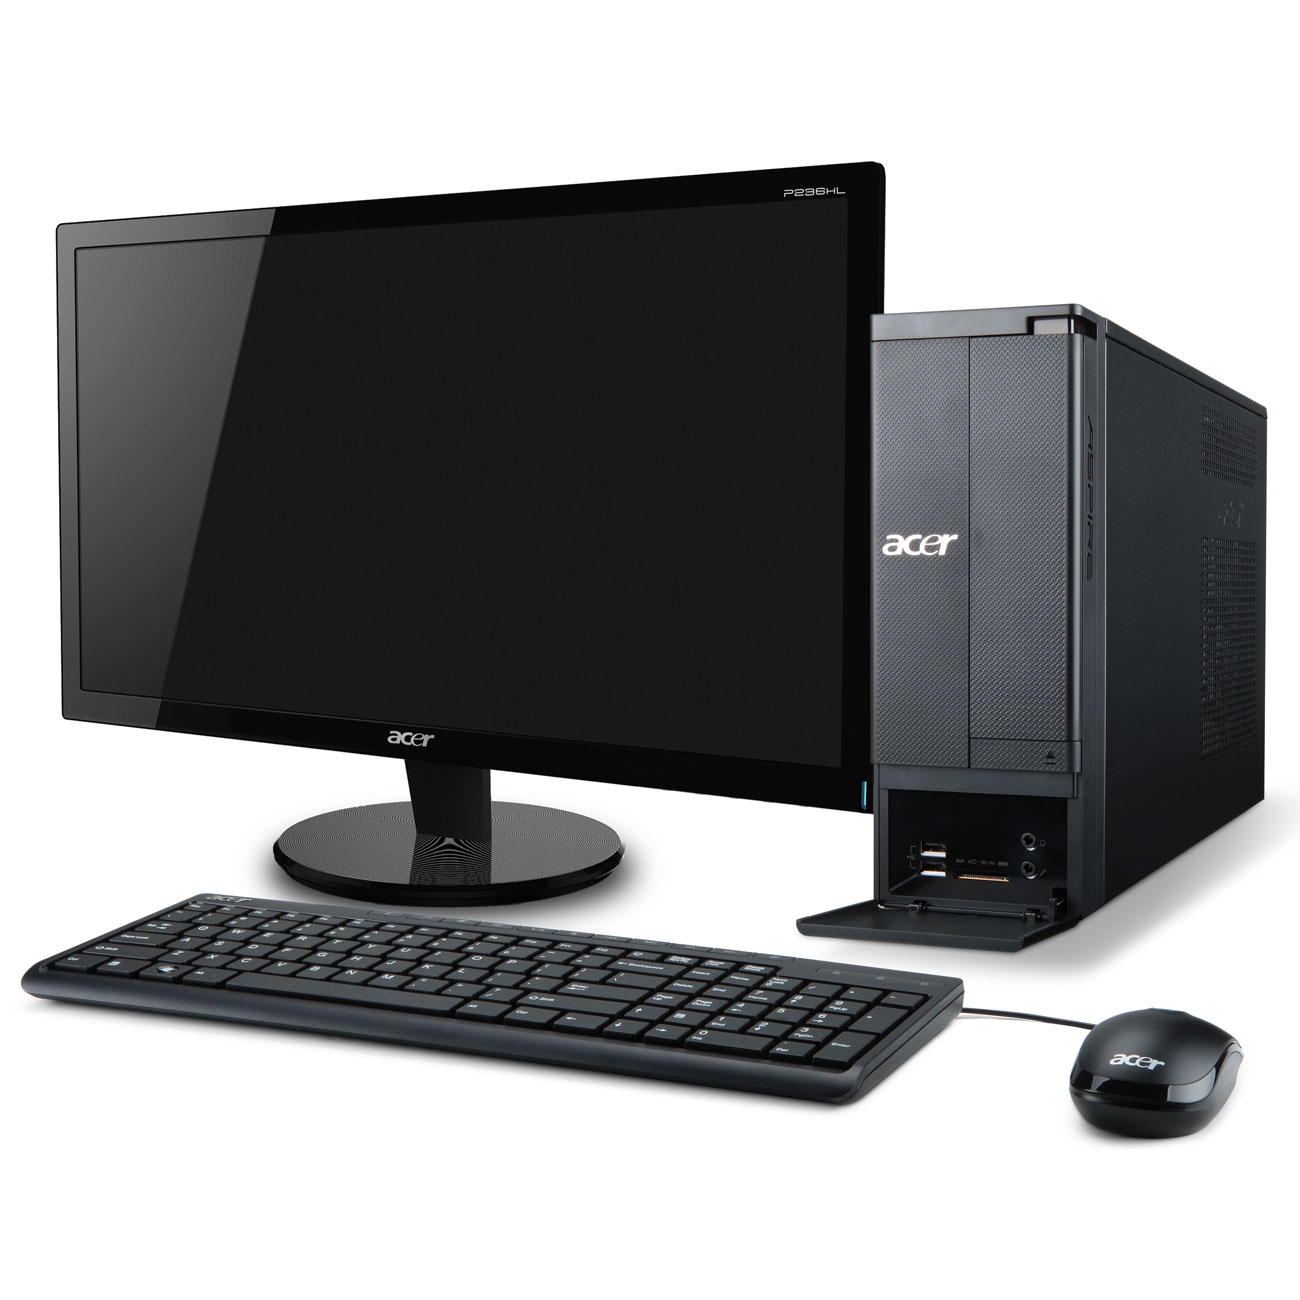 Acer aspire x1430 007 ob 20 pc de bureau acer sur for Ordinateur de bureau pour retouche photo